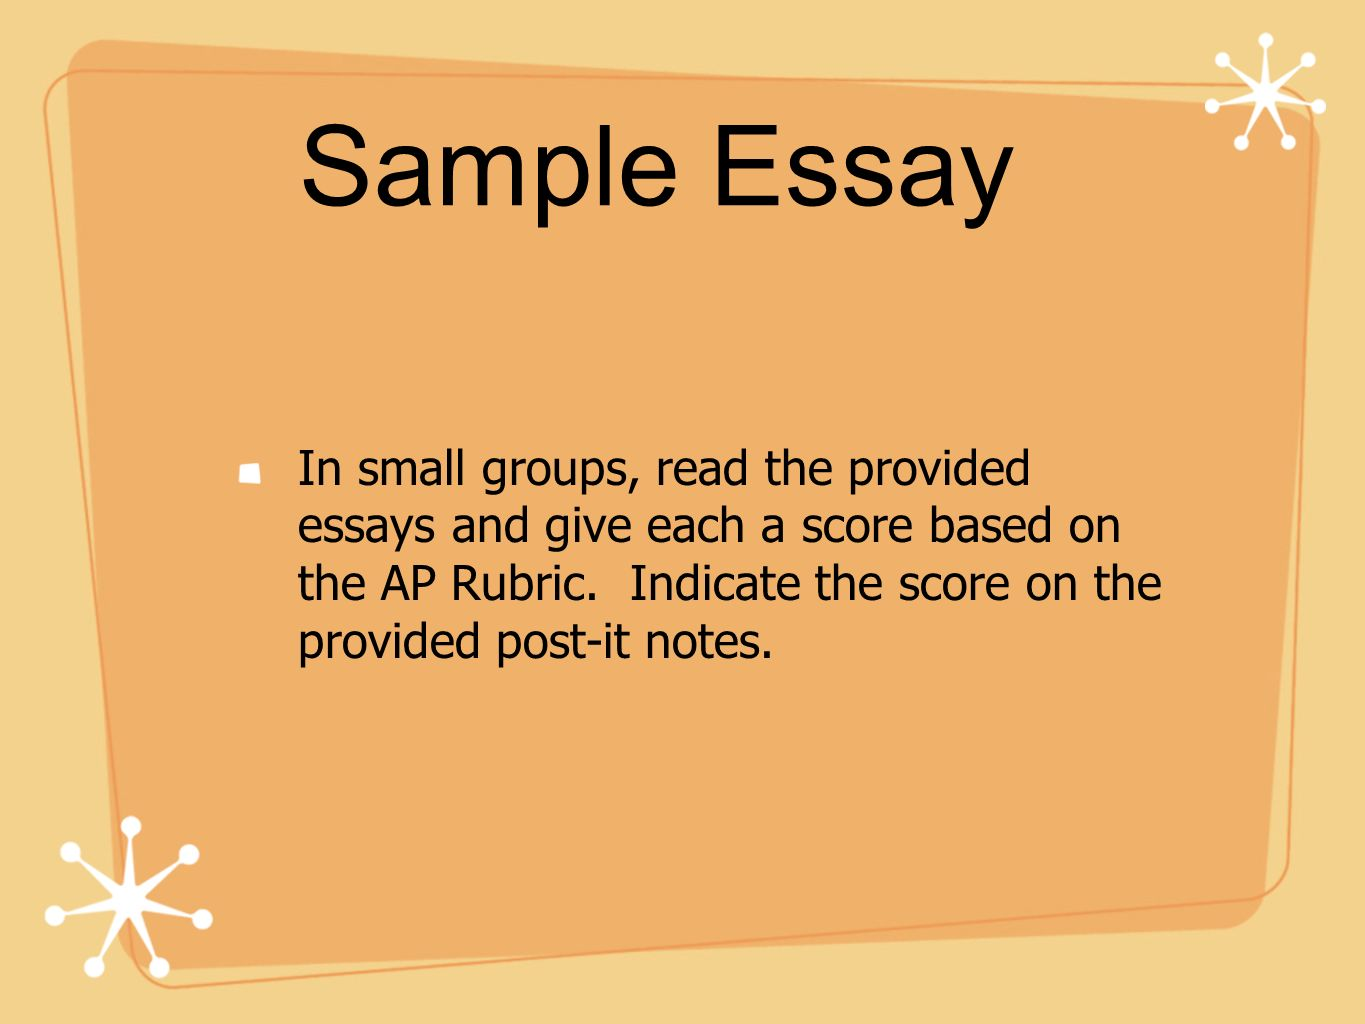 ap lit essays Ap language and composition – grading rubric – rhetorical essay grade description scale 1 scale 2 scale 3 scale 4 9 essays earning a score of 9 meet the criteria.